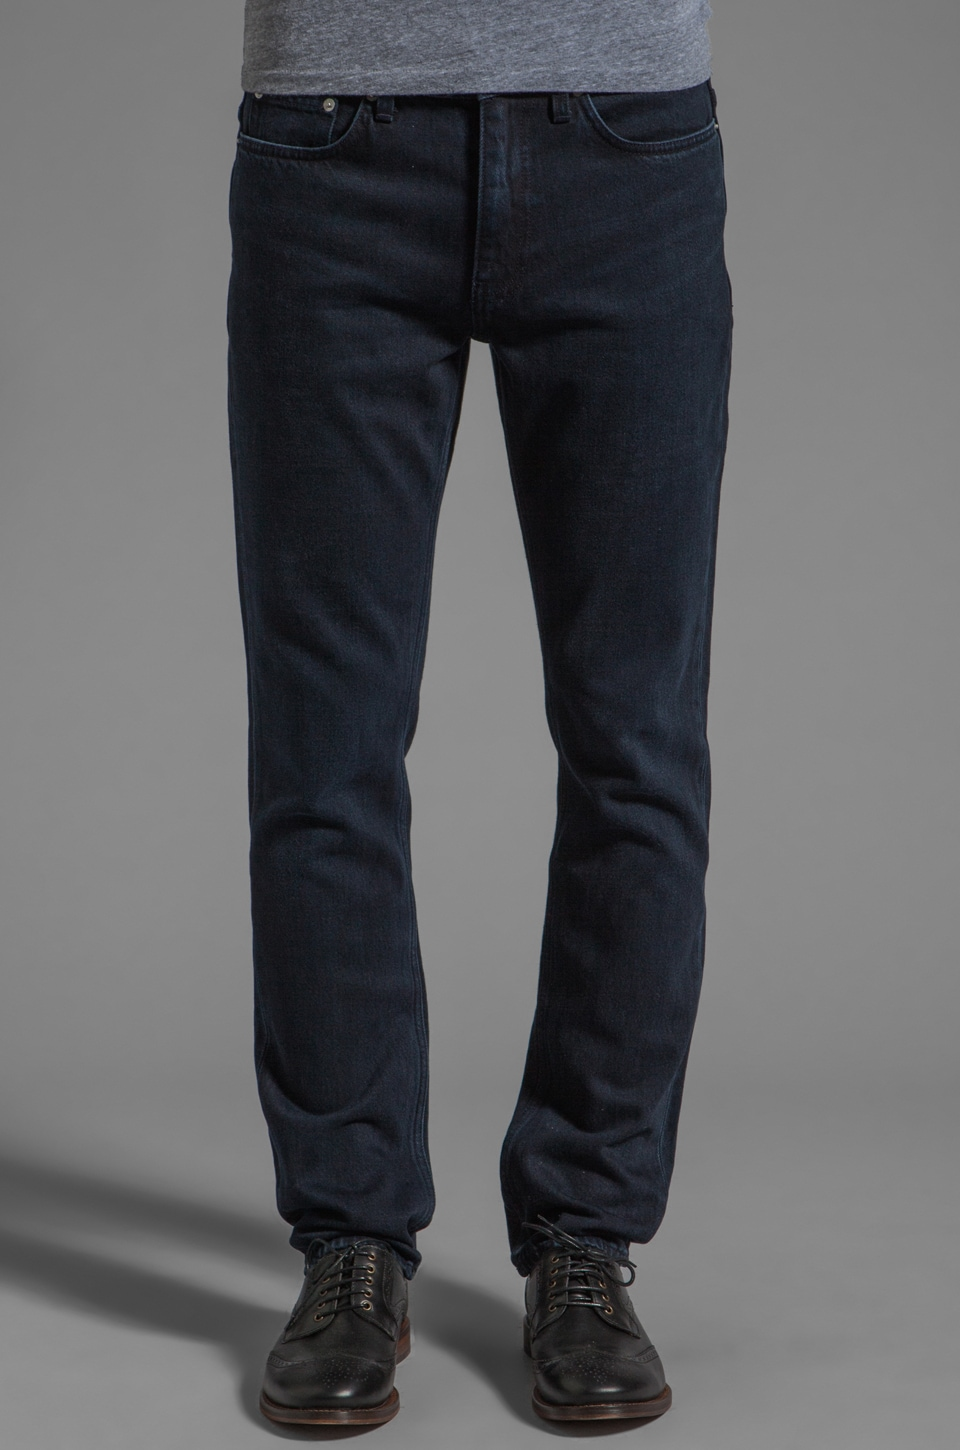 BLK DNM Jeans 5 in Worth Blue